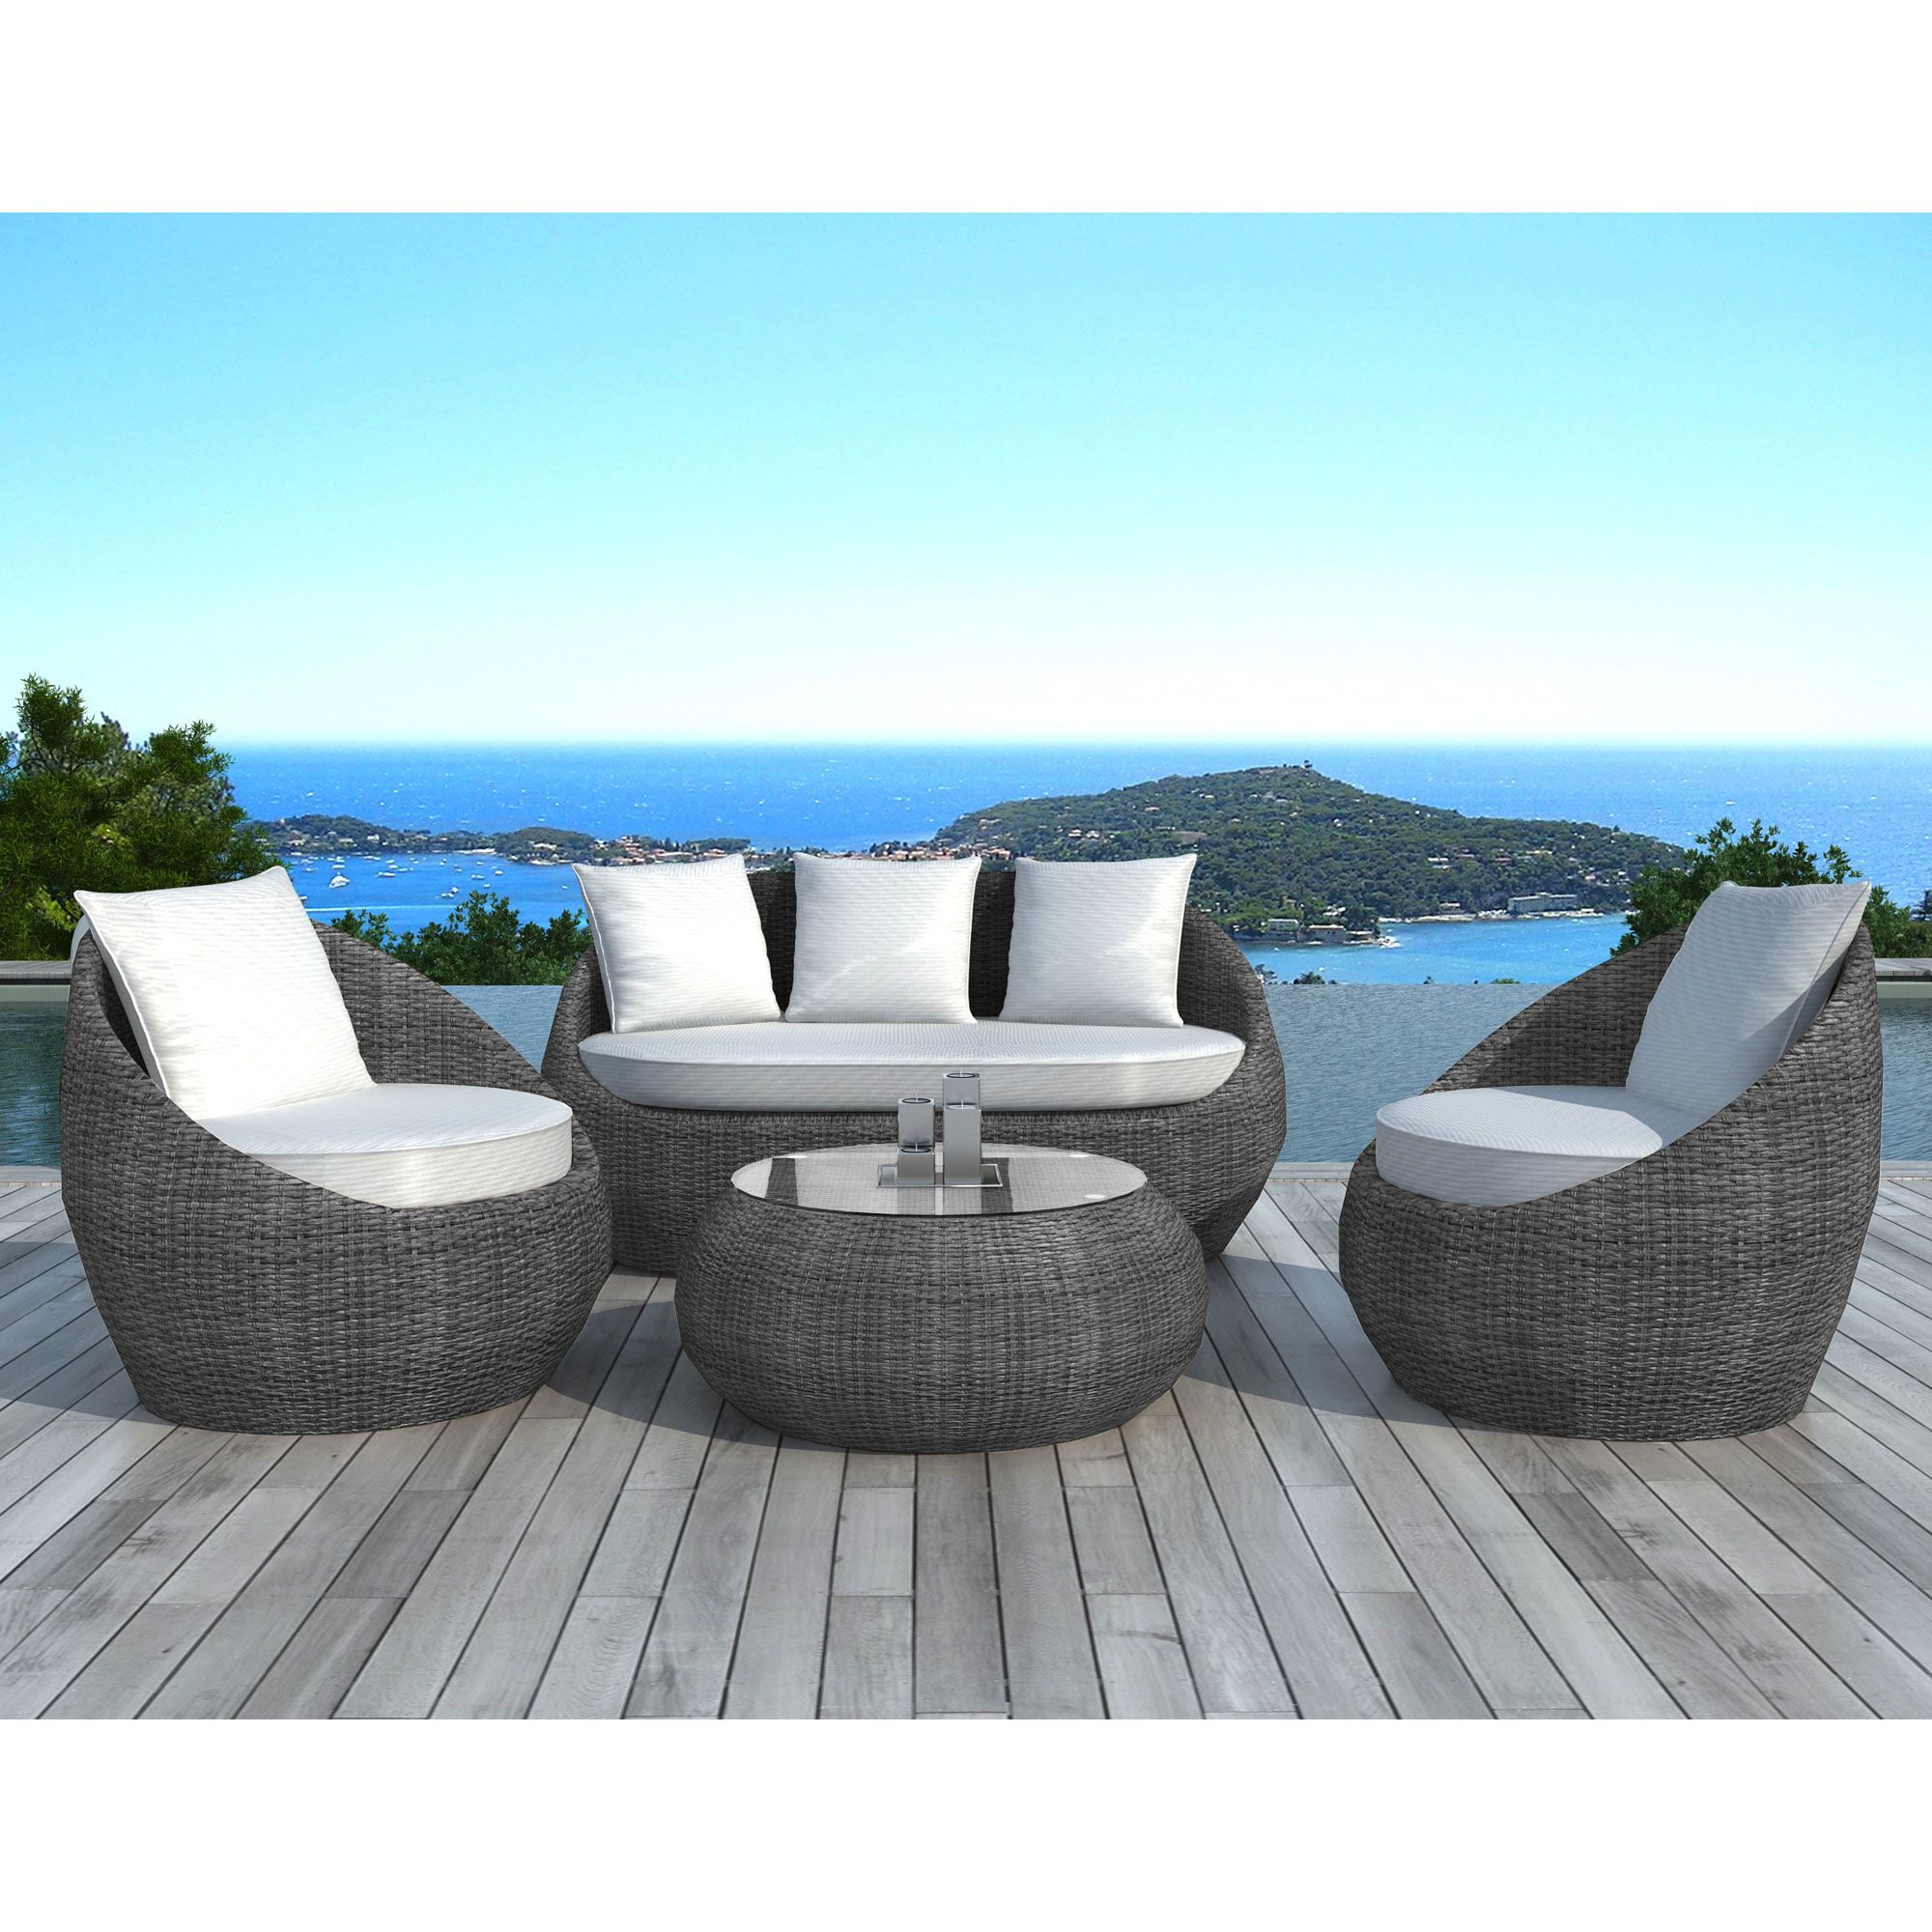 Salon de jardin en r sine tress e 5 places - Table basse resine tressee noir ...